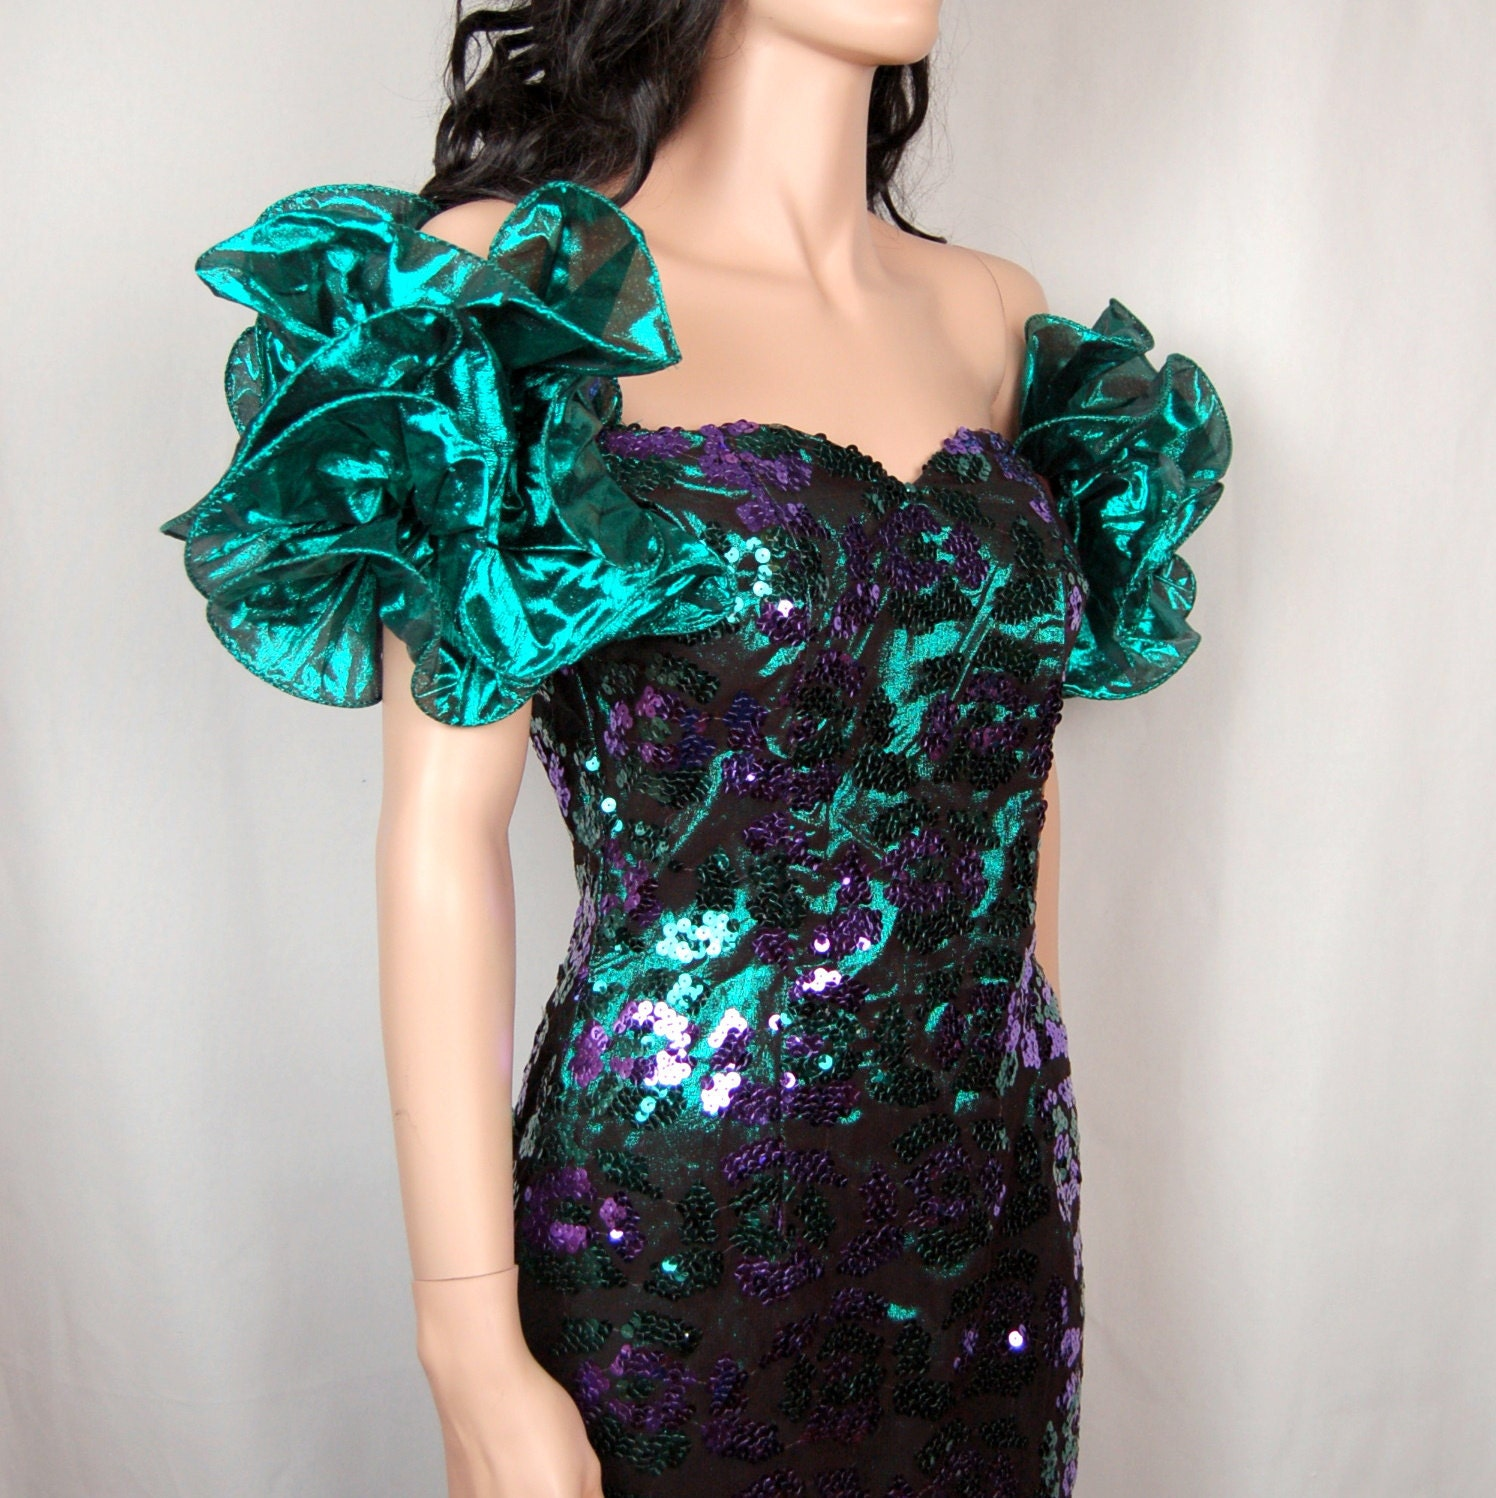 80's Prom Dress Purple & Green Metallic Sequin by ... | 1496 x 1498 jpeg 347kB